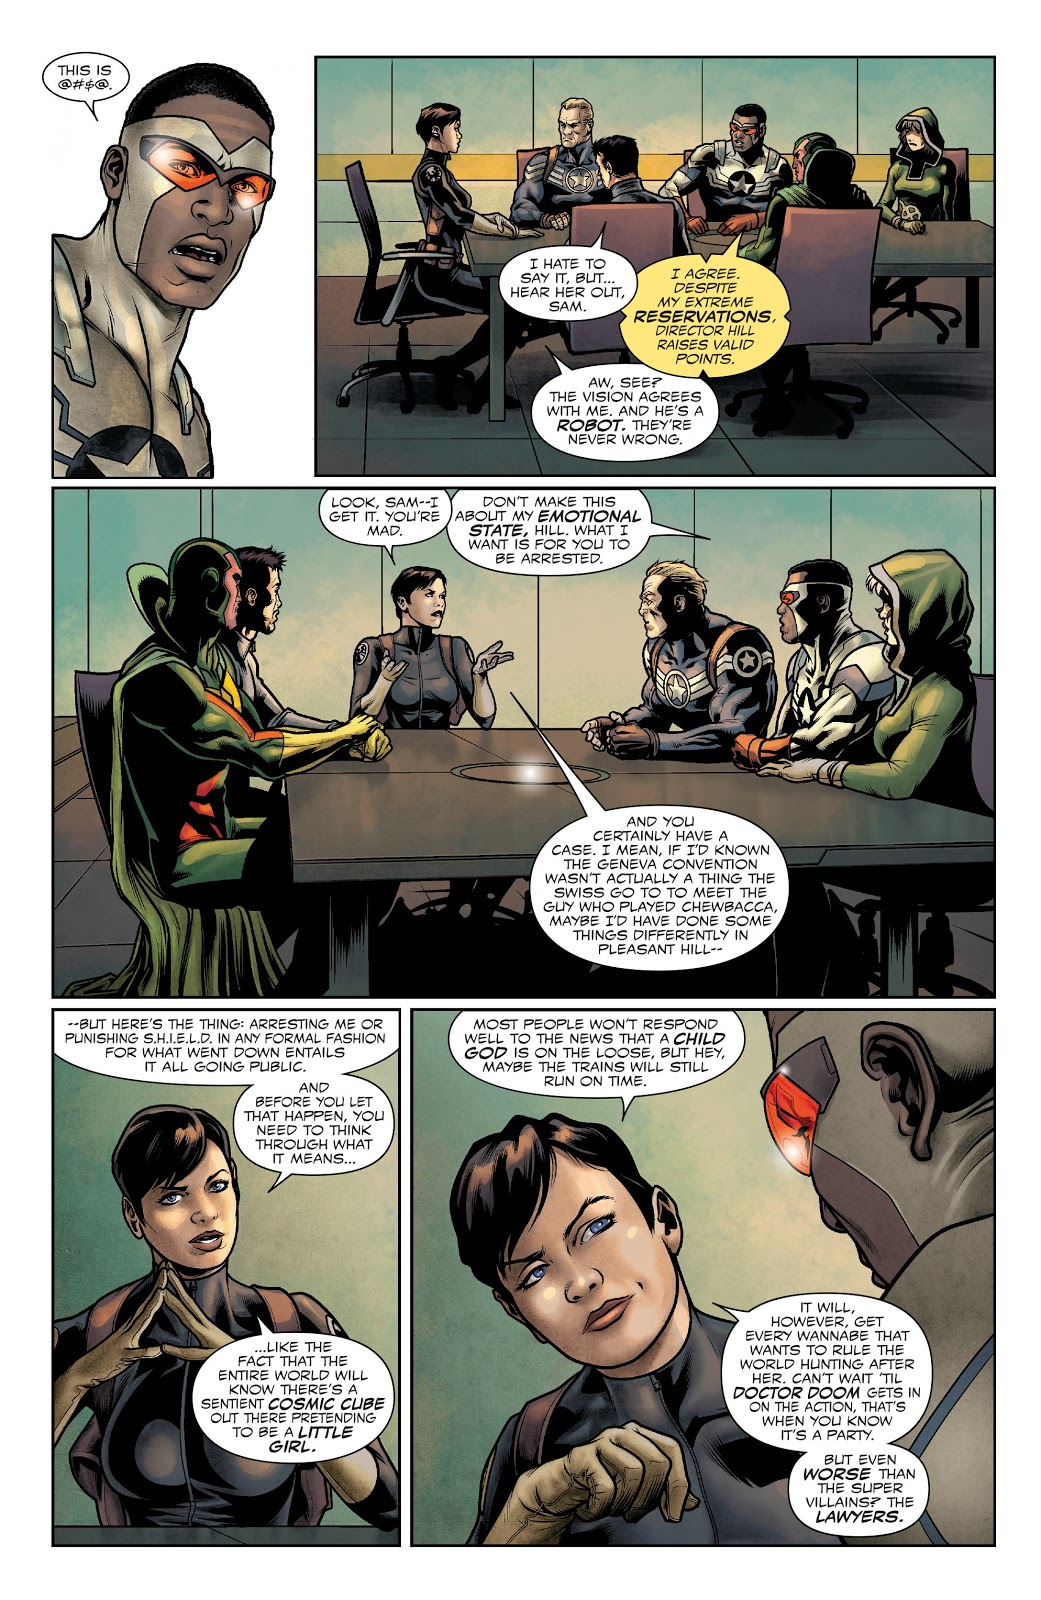 Why Maria Hill Is A Hypocrite